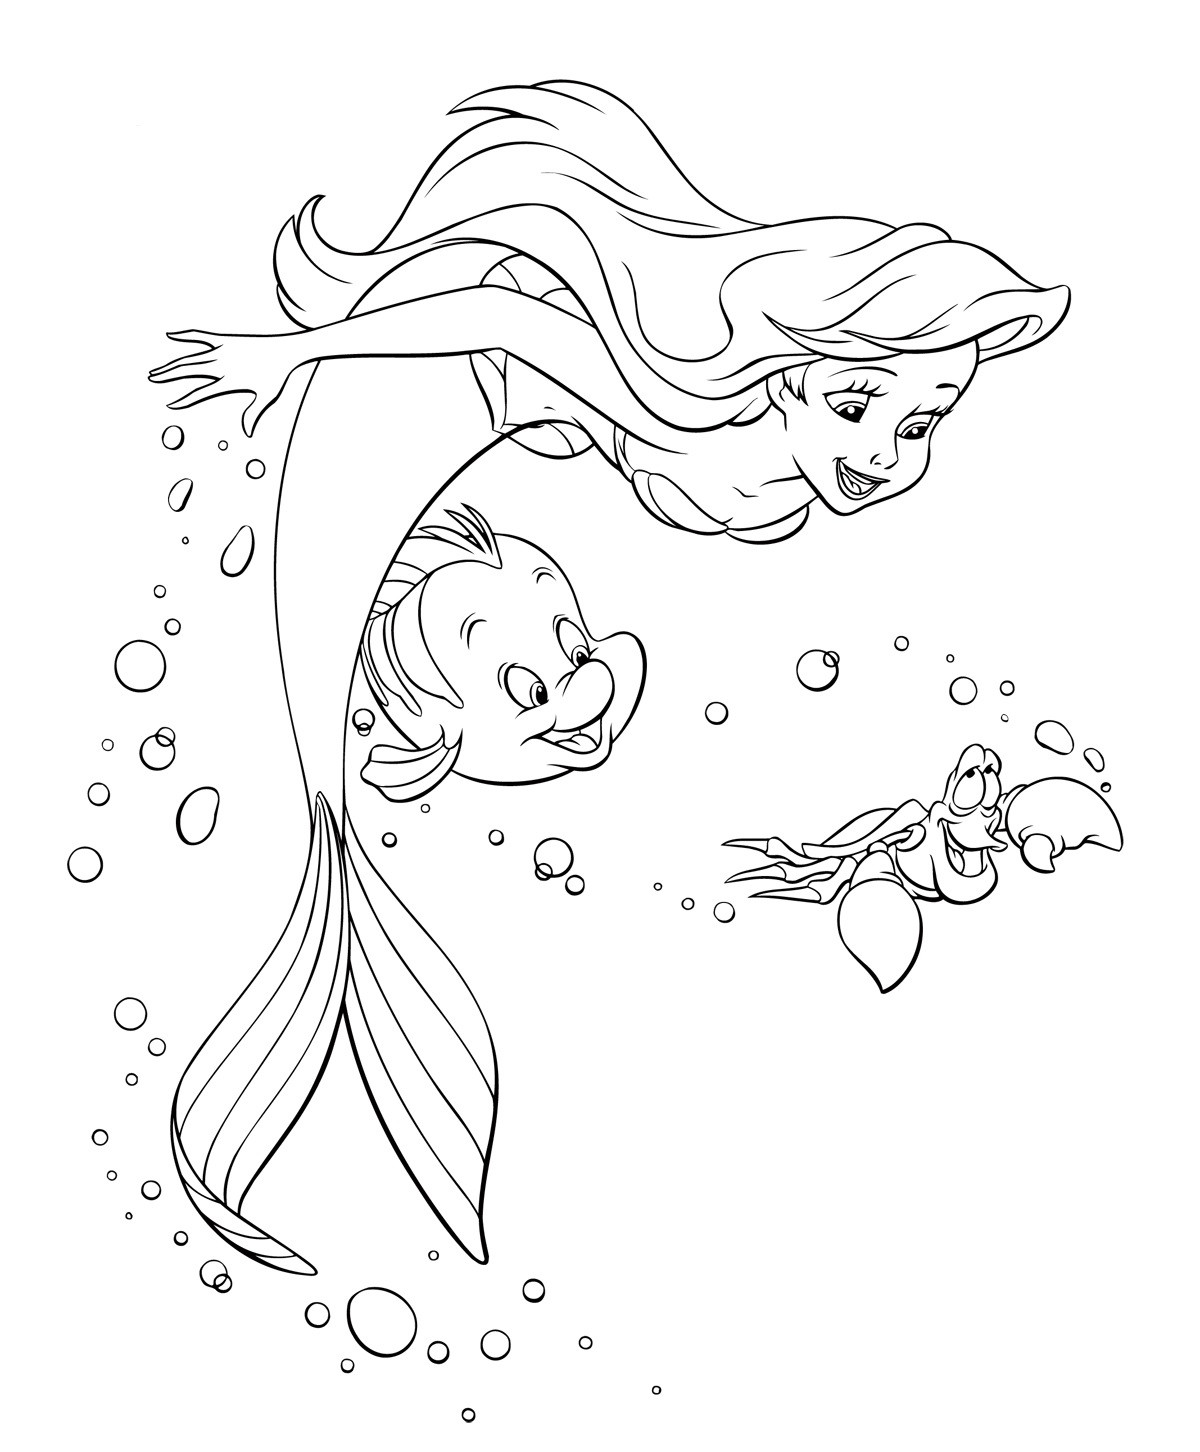 Coloring Sheets For Girls Mermairds  Ariel the Little Mermaid coloring pages for girls to print